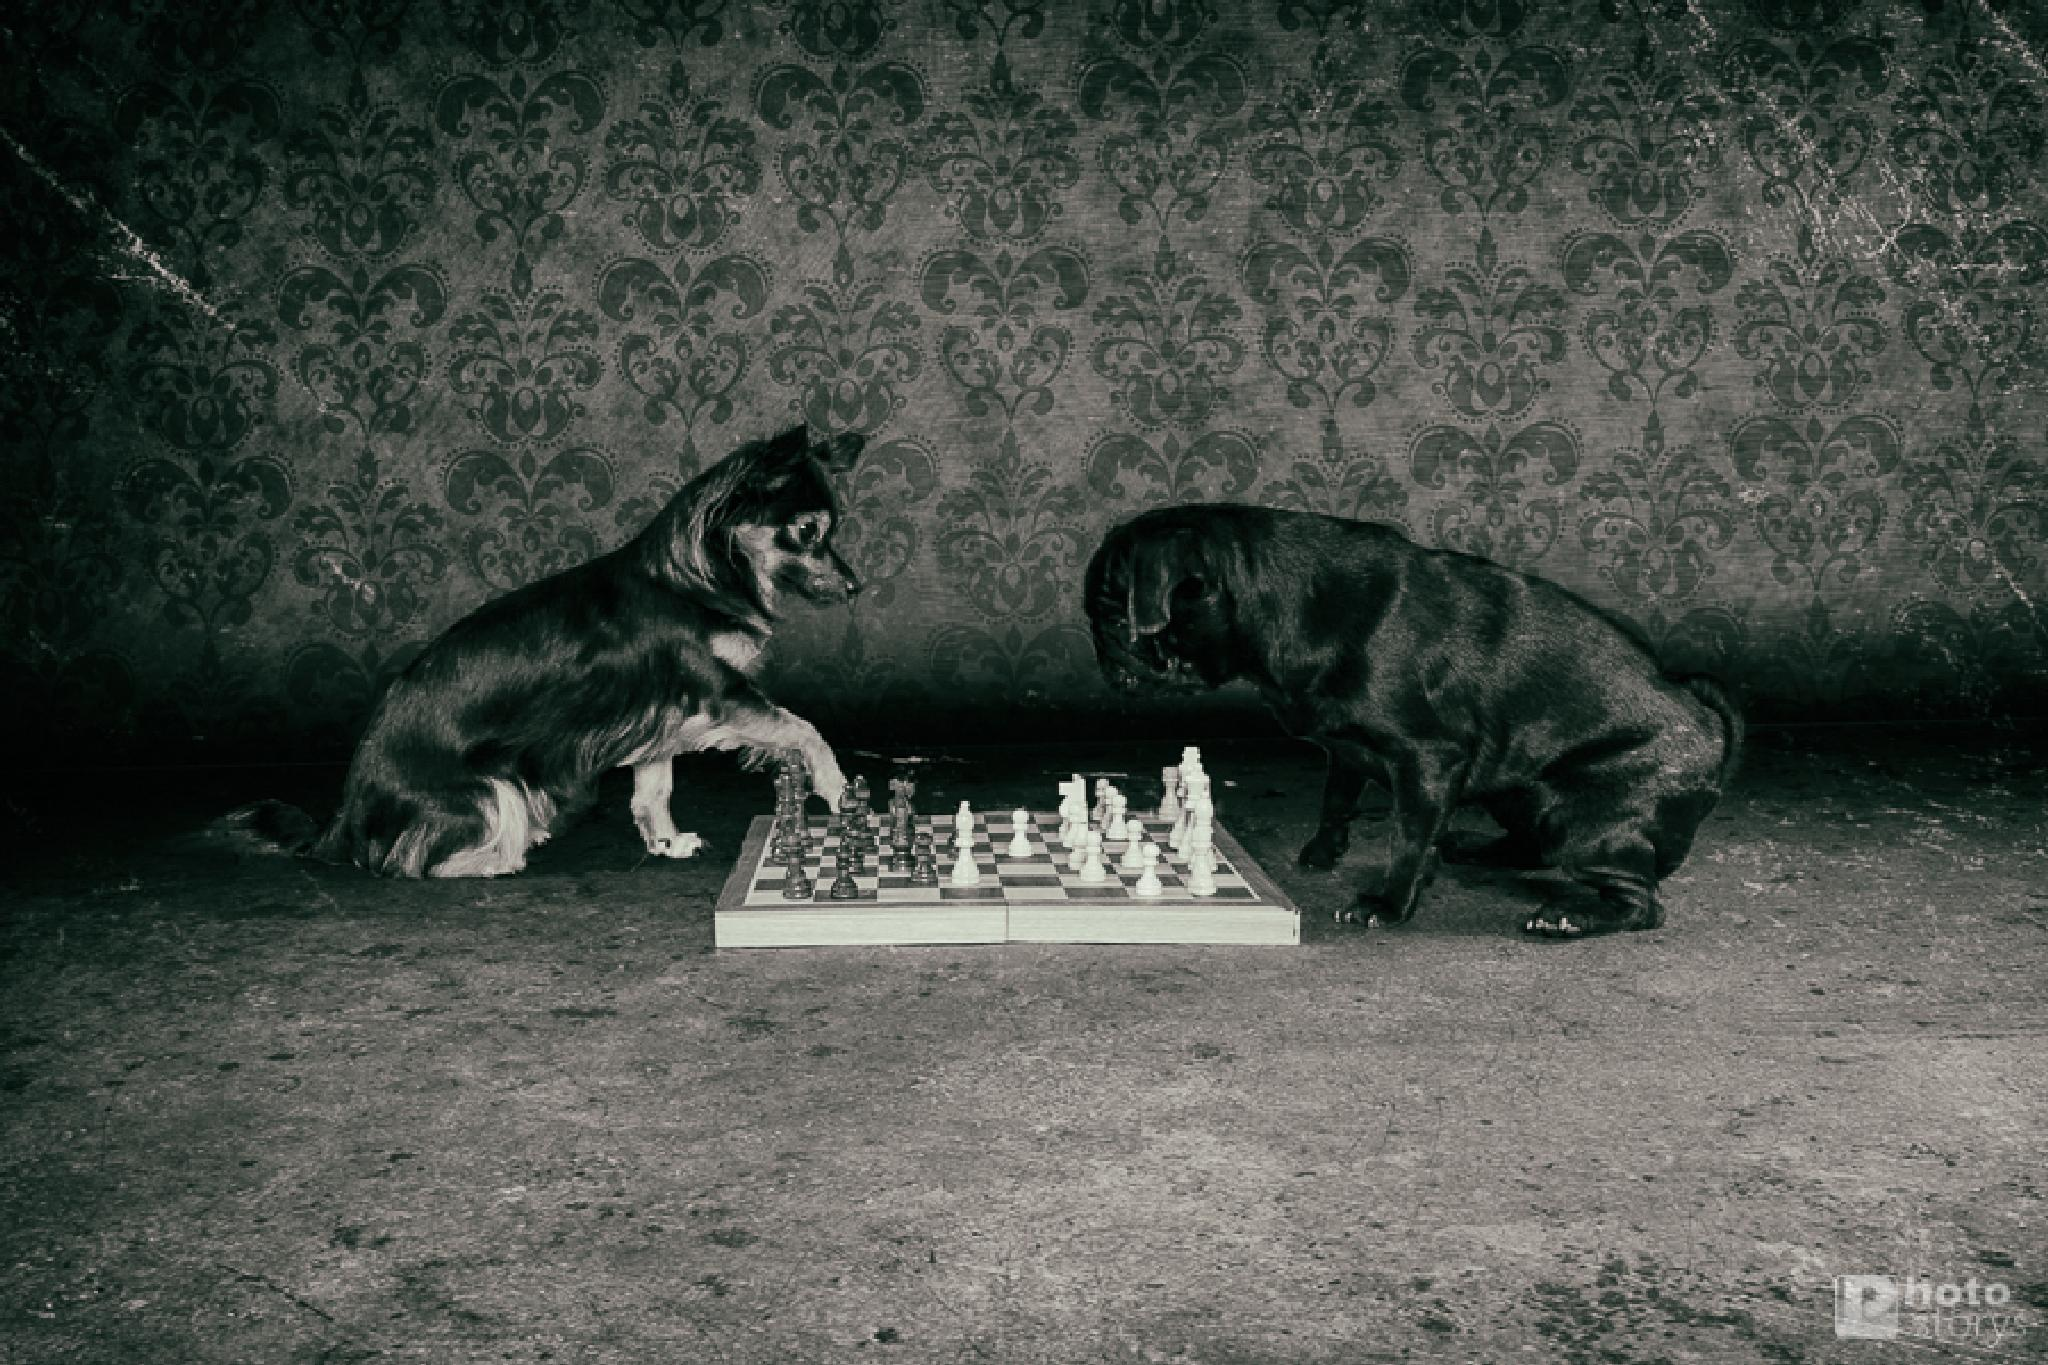 #031 - Dog Chess by Oliver Pinkoss